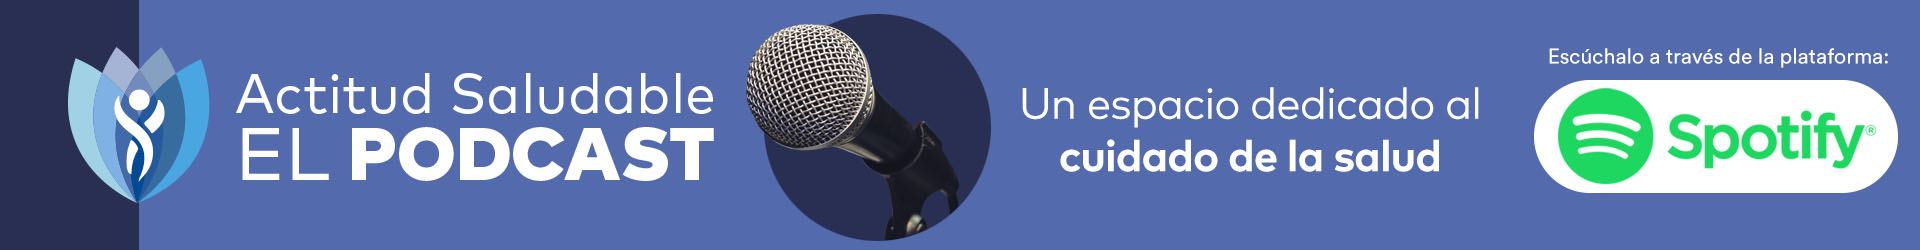 Podcast actitud saludable